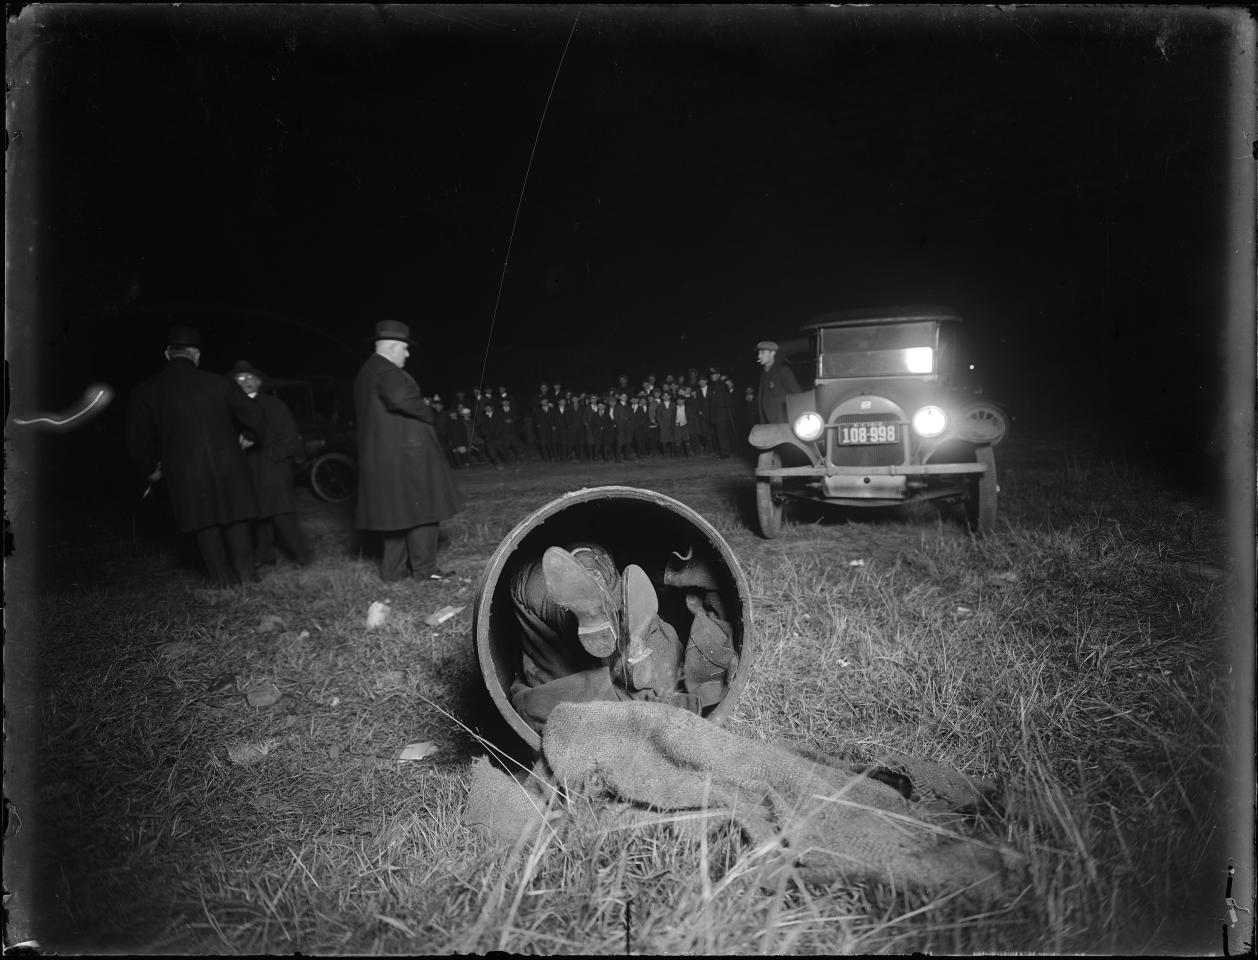 In this 1918 photo provided by the New York City Municipal Archives, police work a homicide after children found the body of Gaspare Candella stuffed in a burlap covered drum out in the middle of a Brooklyn, N.Y. field. Over 870,000 photos from an archive that exceeds 2.2 million images have been scanned and made available online, for the first time giving a global audience a view of a rich collection that documents life and sometimes death in New York City.  (AP Photo/New York City Municipal Archives, NYPD Evidence Collection, Detective Charles A. Carlstrom) MANDATORY CREDIT